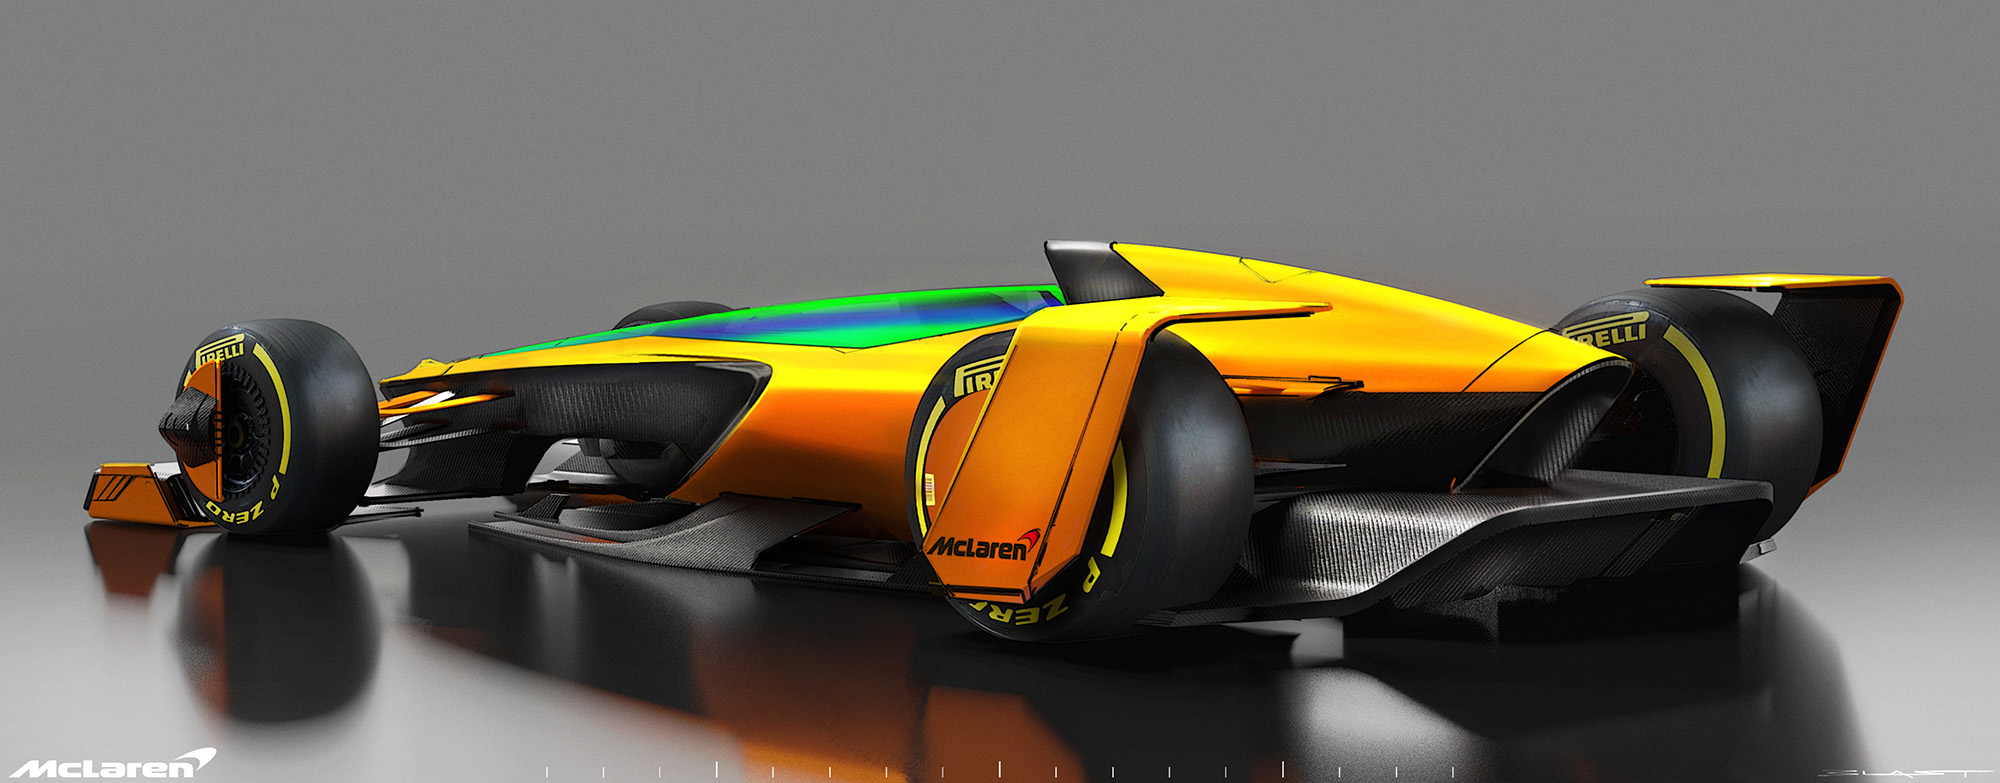 MCLAREN_Ext_Rear_GP1_V2_blast_upload.jpg